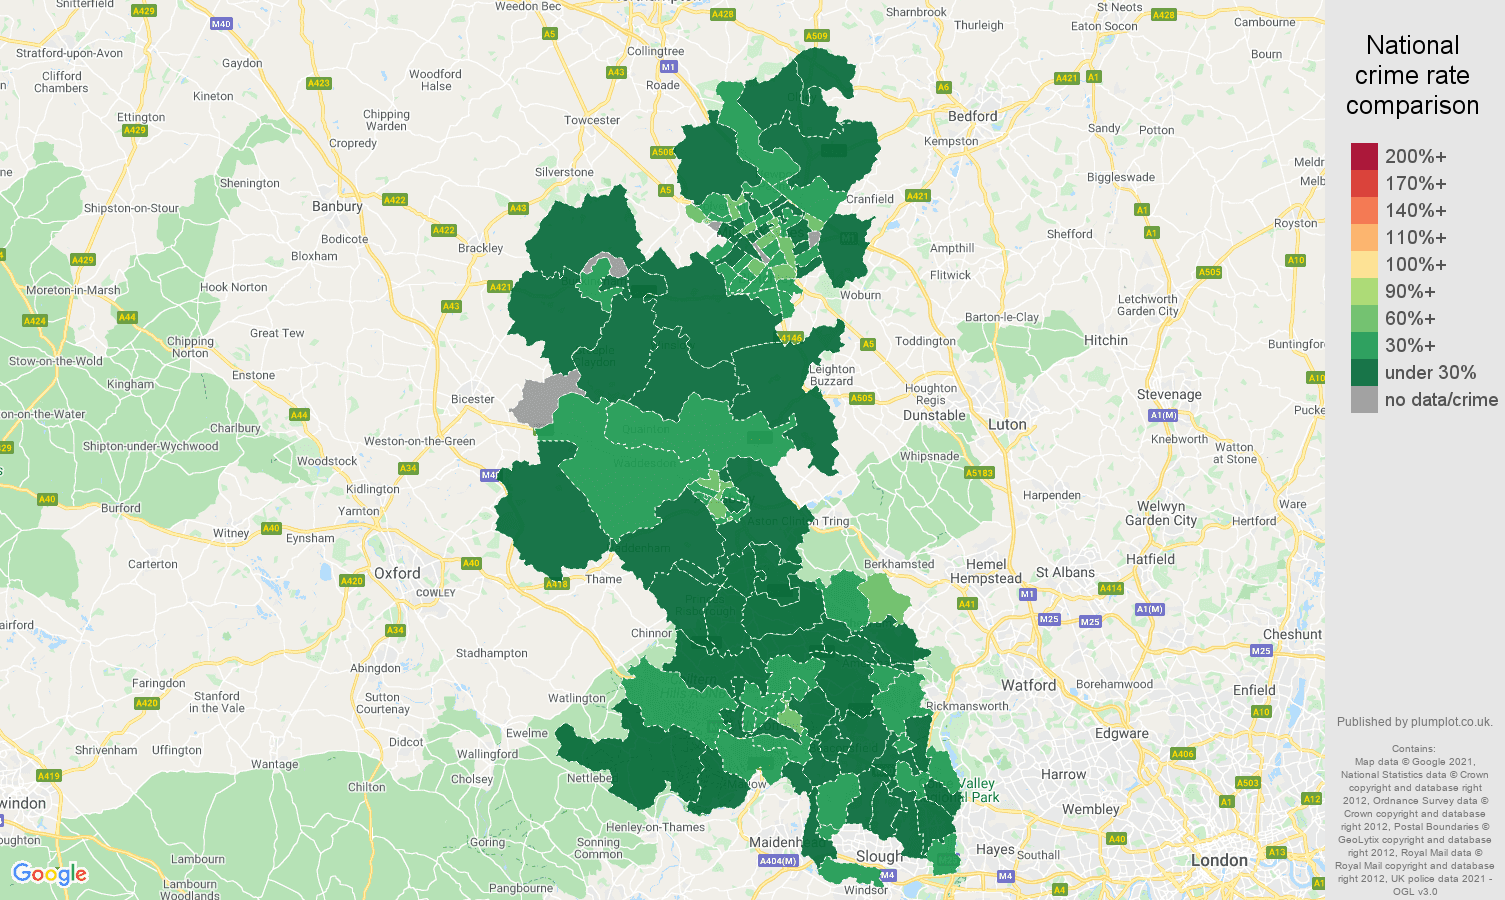 Buckinghamshire antisocial behaviour crime rate comparison map